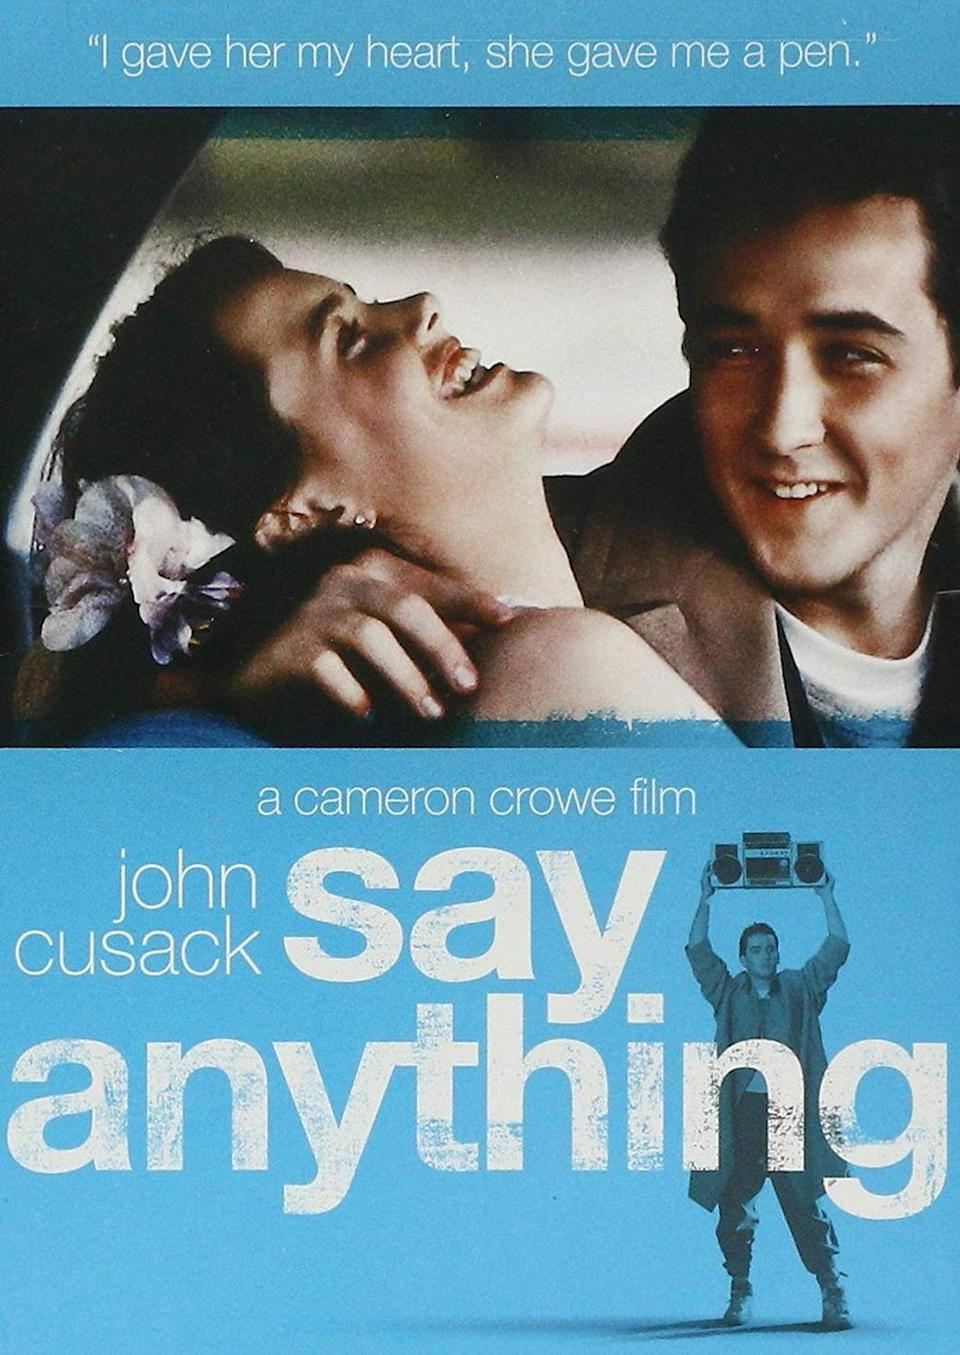 """<p><a class=""""link rapid-noclick-resp"""" href=""""https://www.amazon.com/Say-Anything-John-Cusack/dp/B00K0CC7PE/ref=sr_1_1?tag=syn-yahoo-20&ascsubtag=%5Bartid%7C10050.g.25810122%5Bsrc%7Cyahoo-us"""" rel=""""nofollow noopener"""" target=""""_blank"""" data-ylk=""""slk:STREAM NOW"""">STREAM NOW</a></p><p>This classic 80s rom-com follows two high schoolers who try to make their love work, despite her father not approving.<br></p>"""